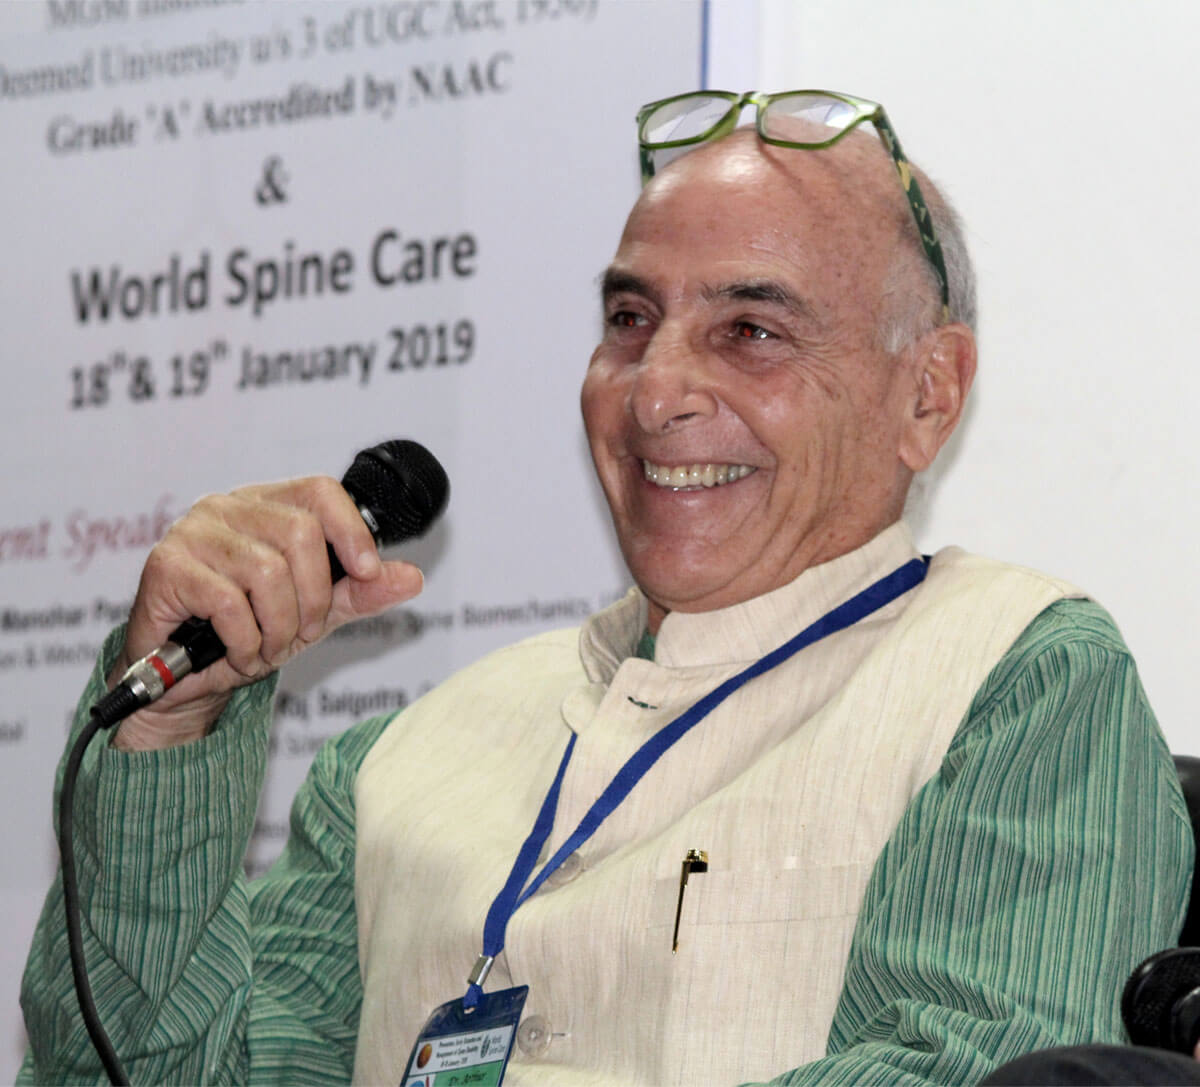 At the World Spine Care Conference 1/19